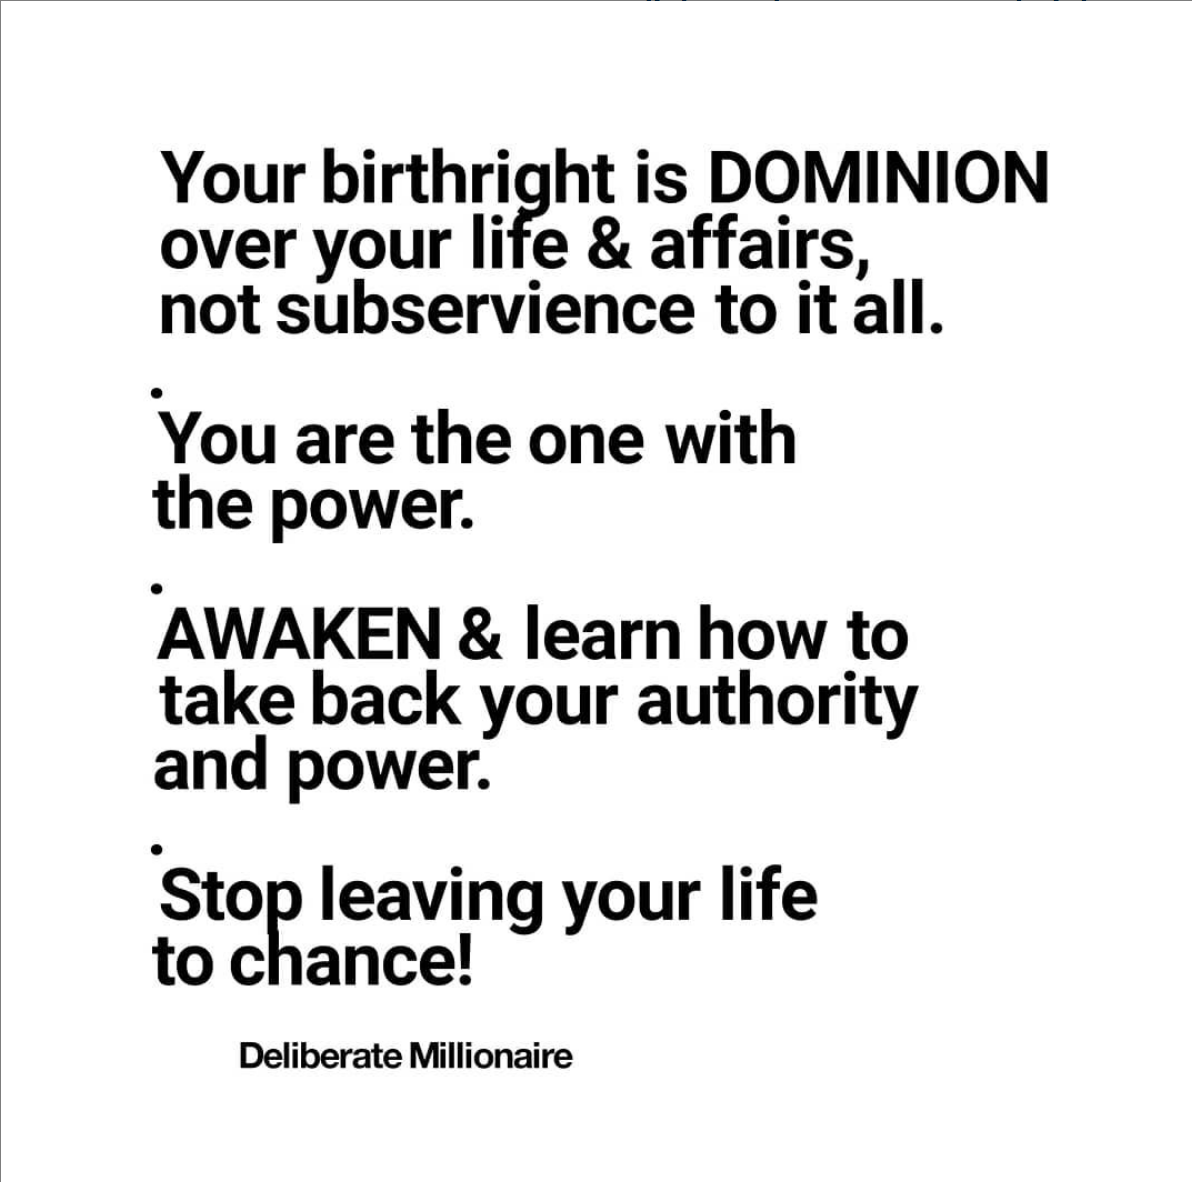 Your Birthright Is Dominion Over Your Affairs, NOT the other way round